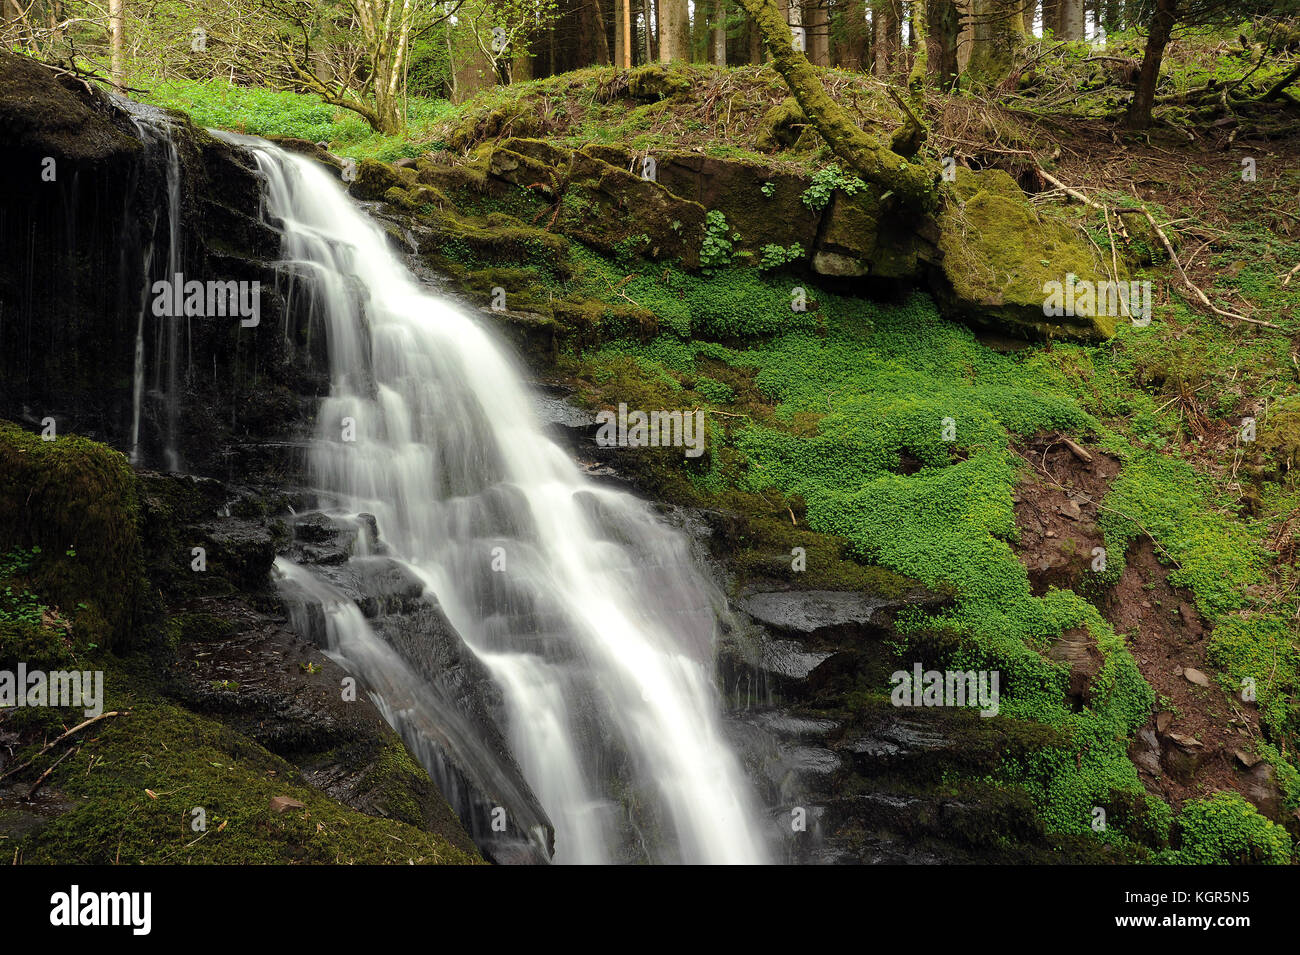 Penultimate waterfall on the Nant Bwrefwr. - Stock Image